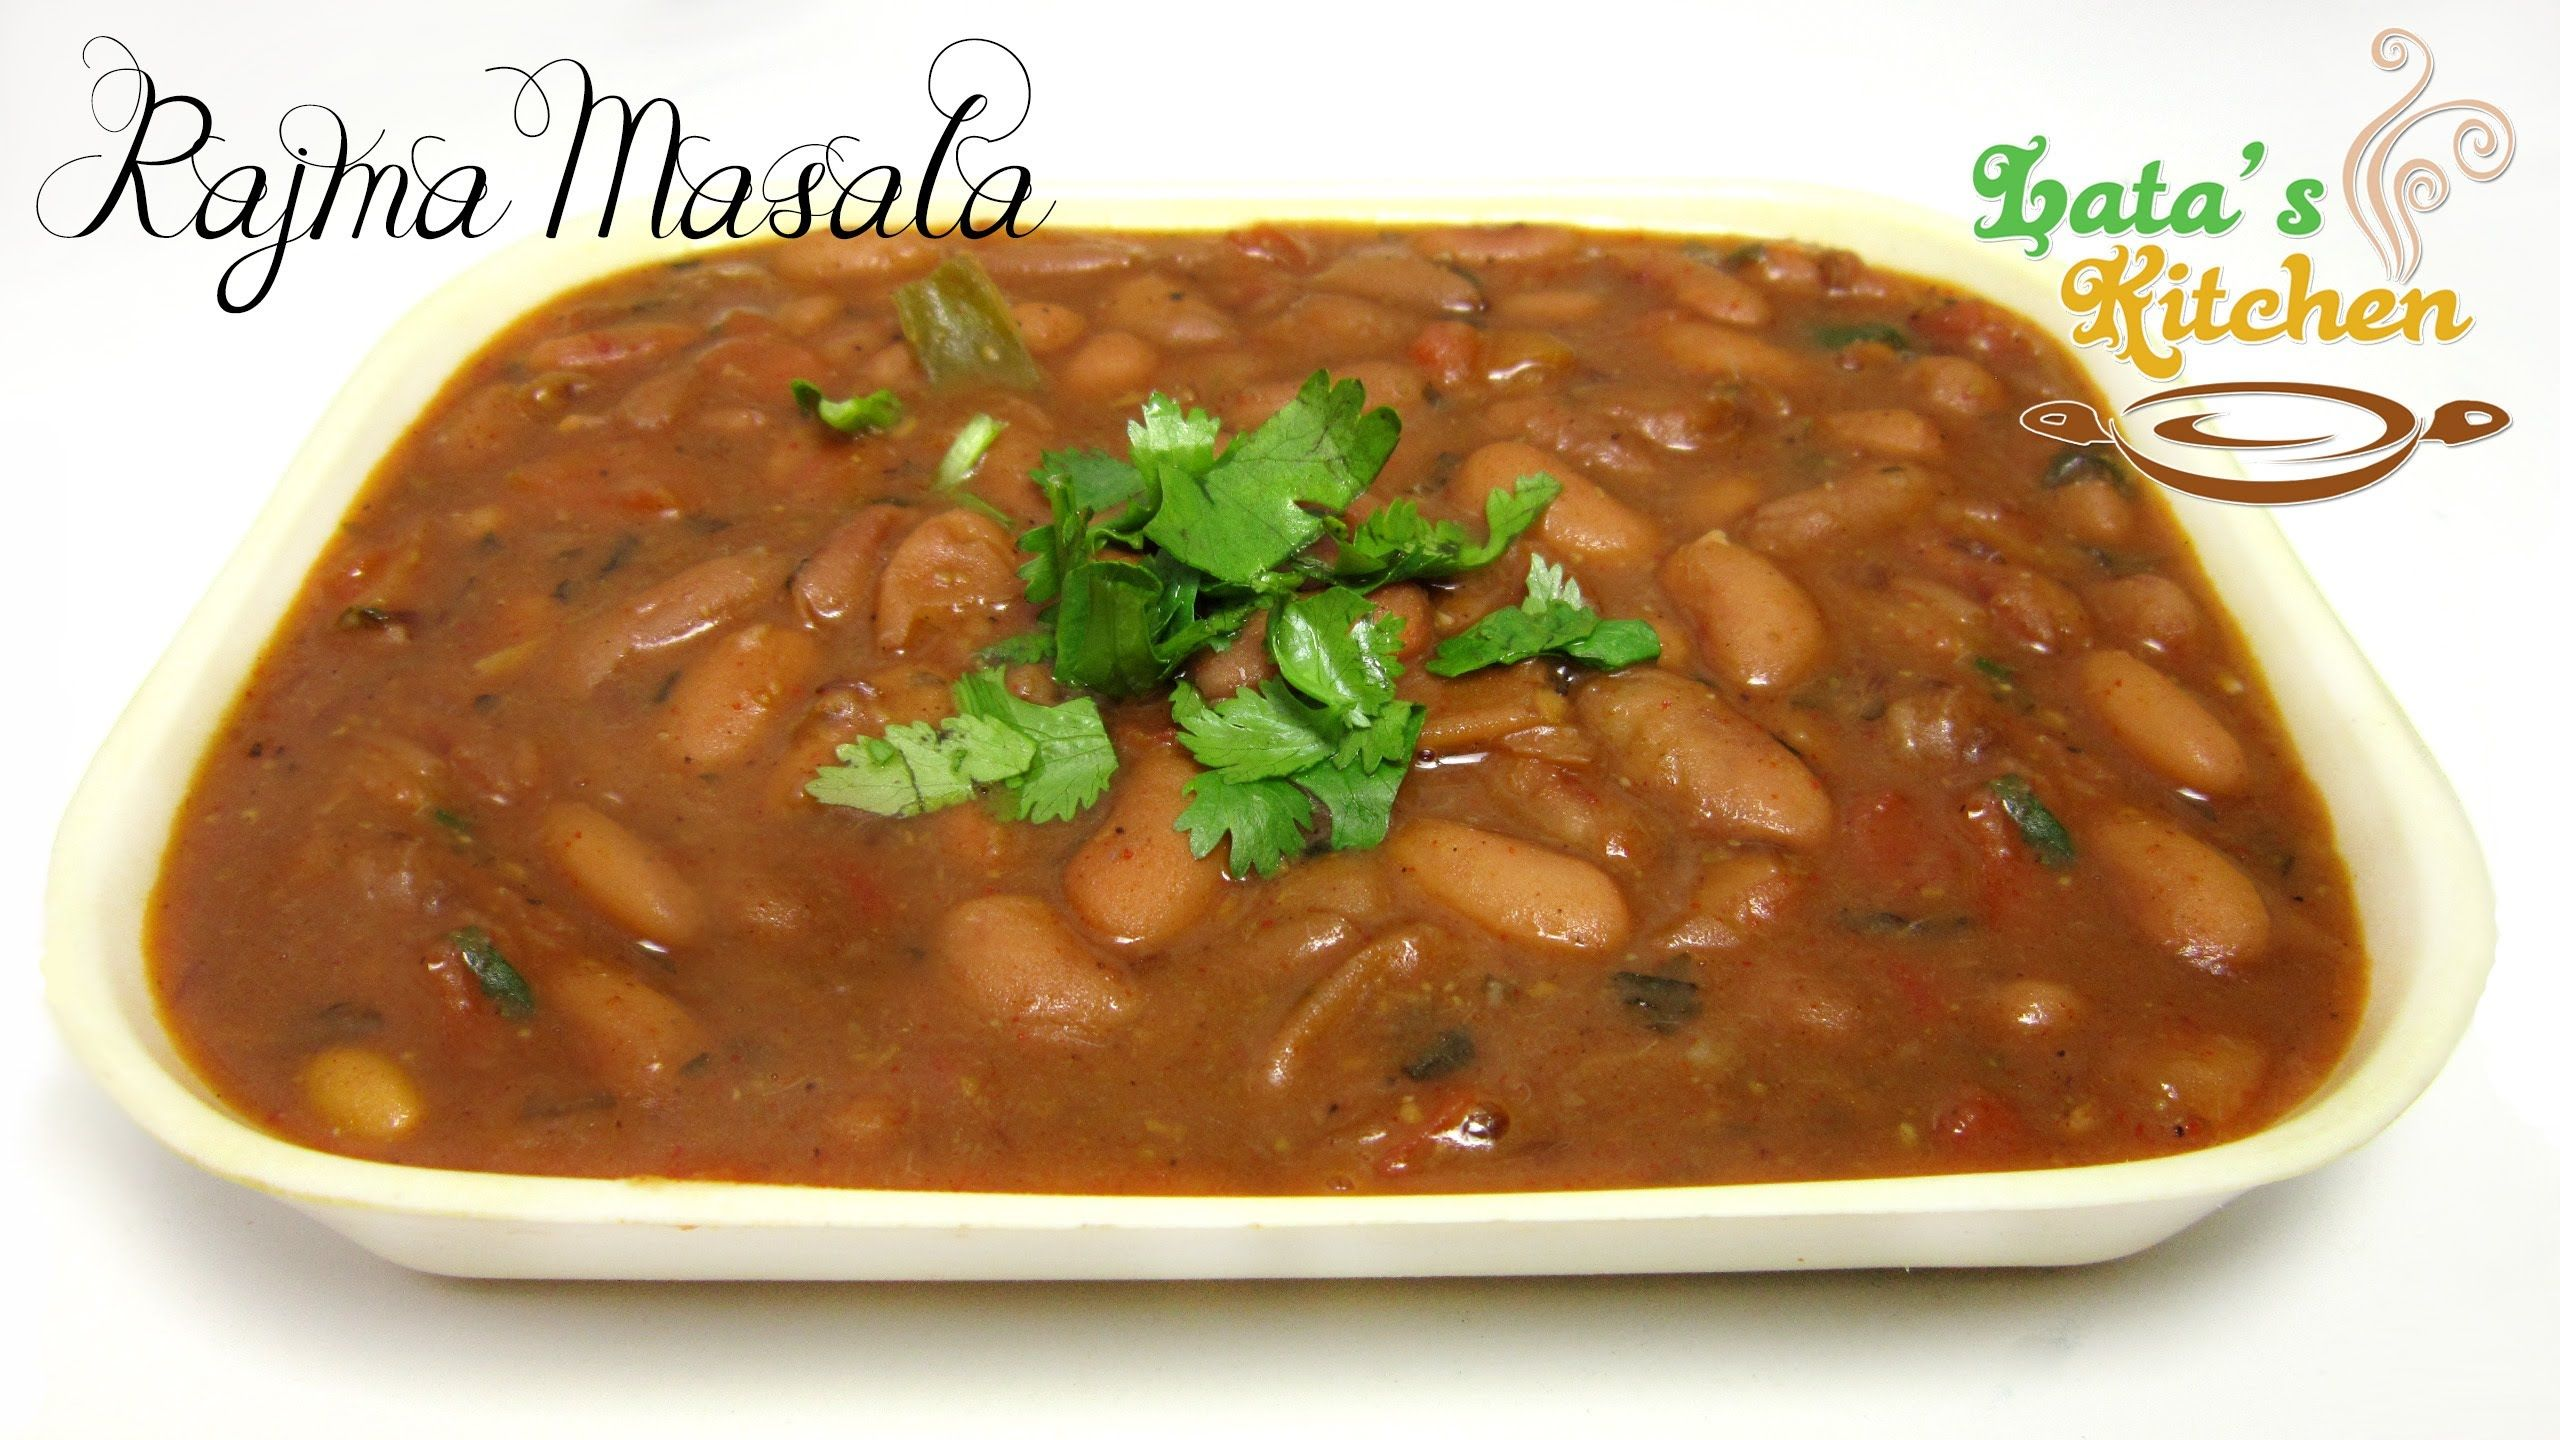 Rajma masala recipe indian vegetarian recipe video in hindi with rajma masala recipe indian vegetarian recipe video in hindi with english subtitles forumfinder